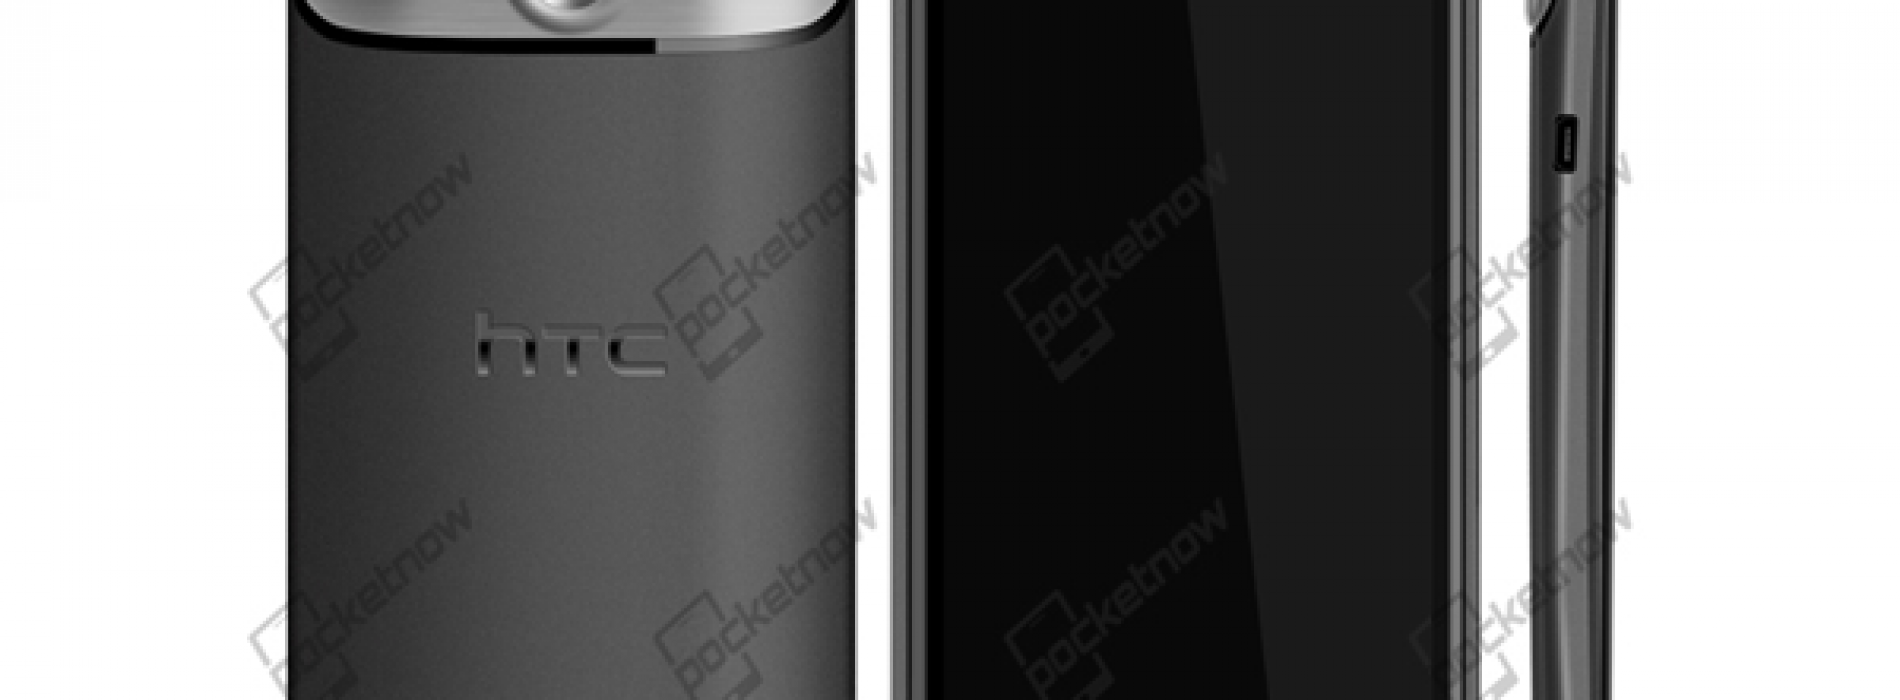 HTC Edge may arrive as world's first quad-core Android smartphone